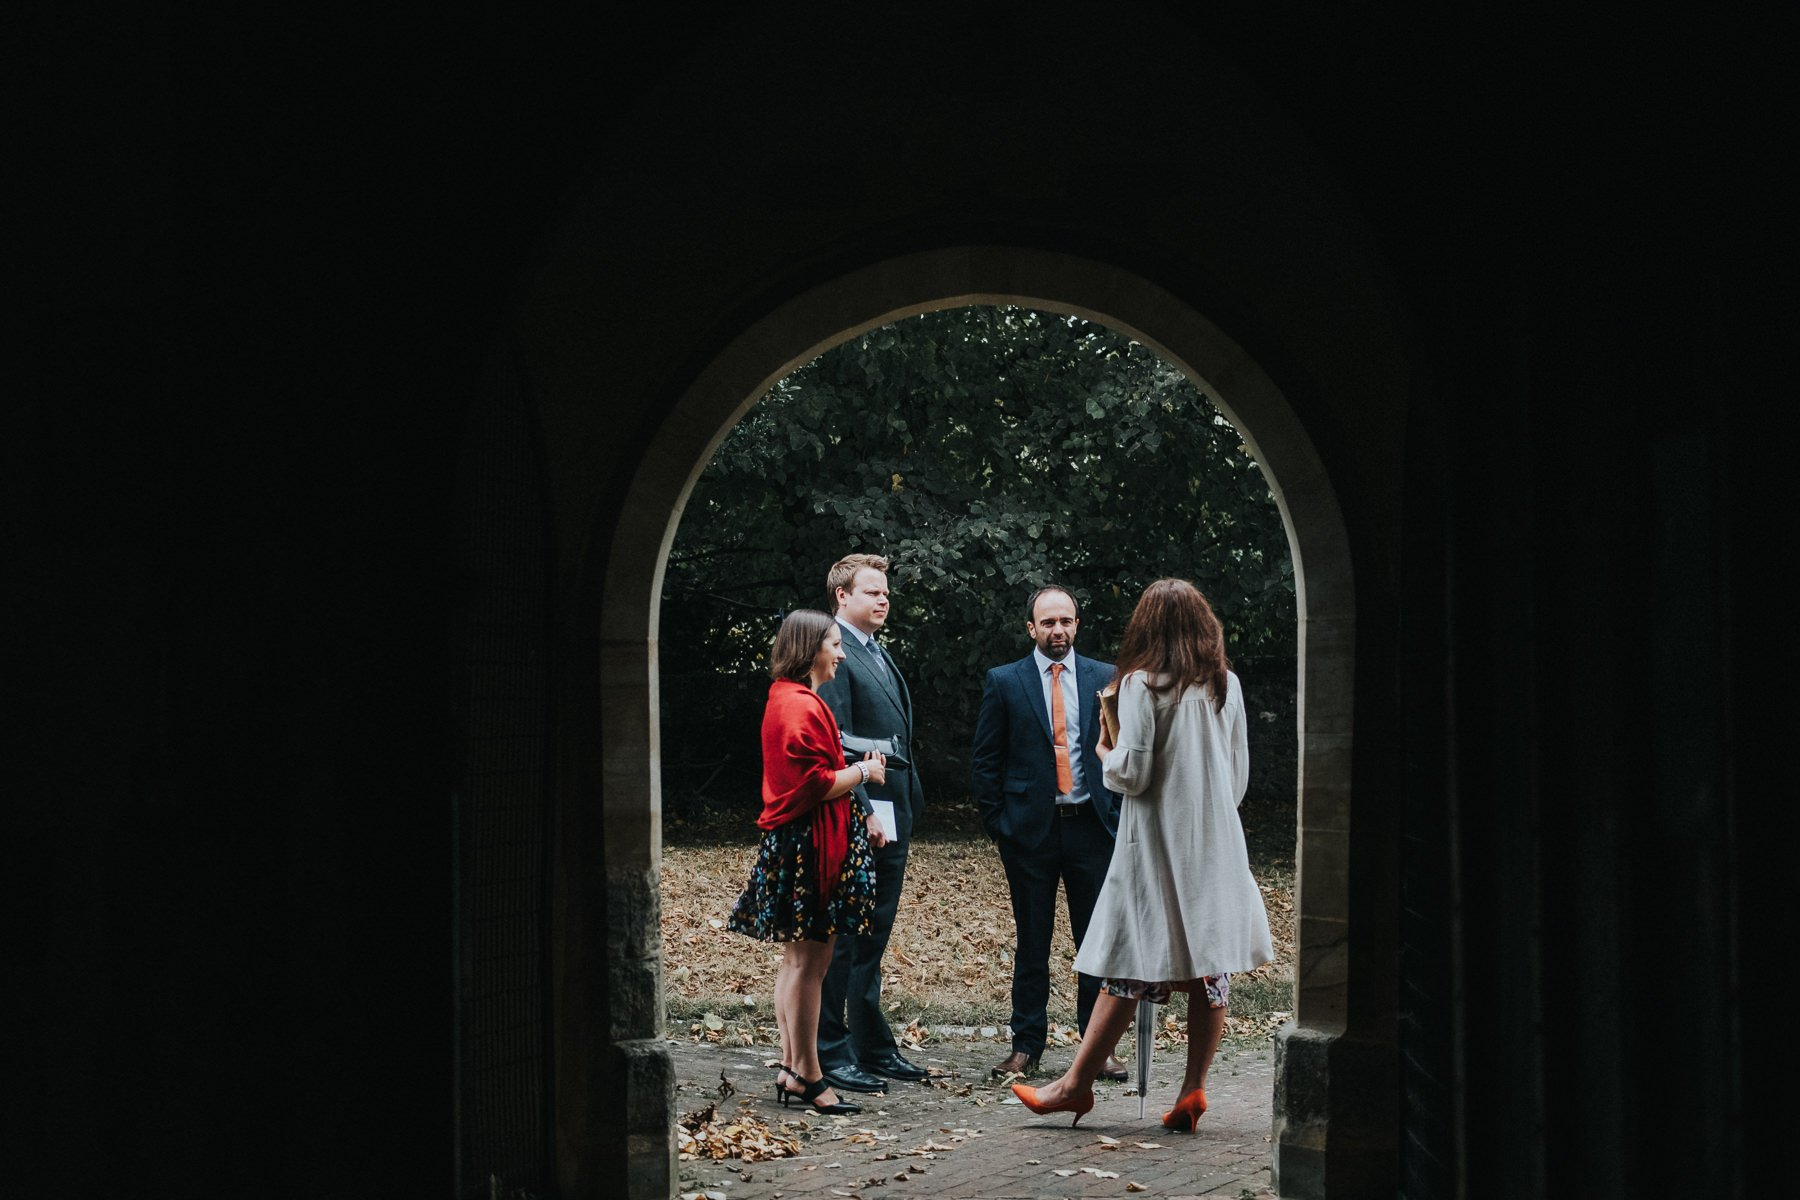 firle-place-wedding-photography-fazackarley-milly-chris-035